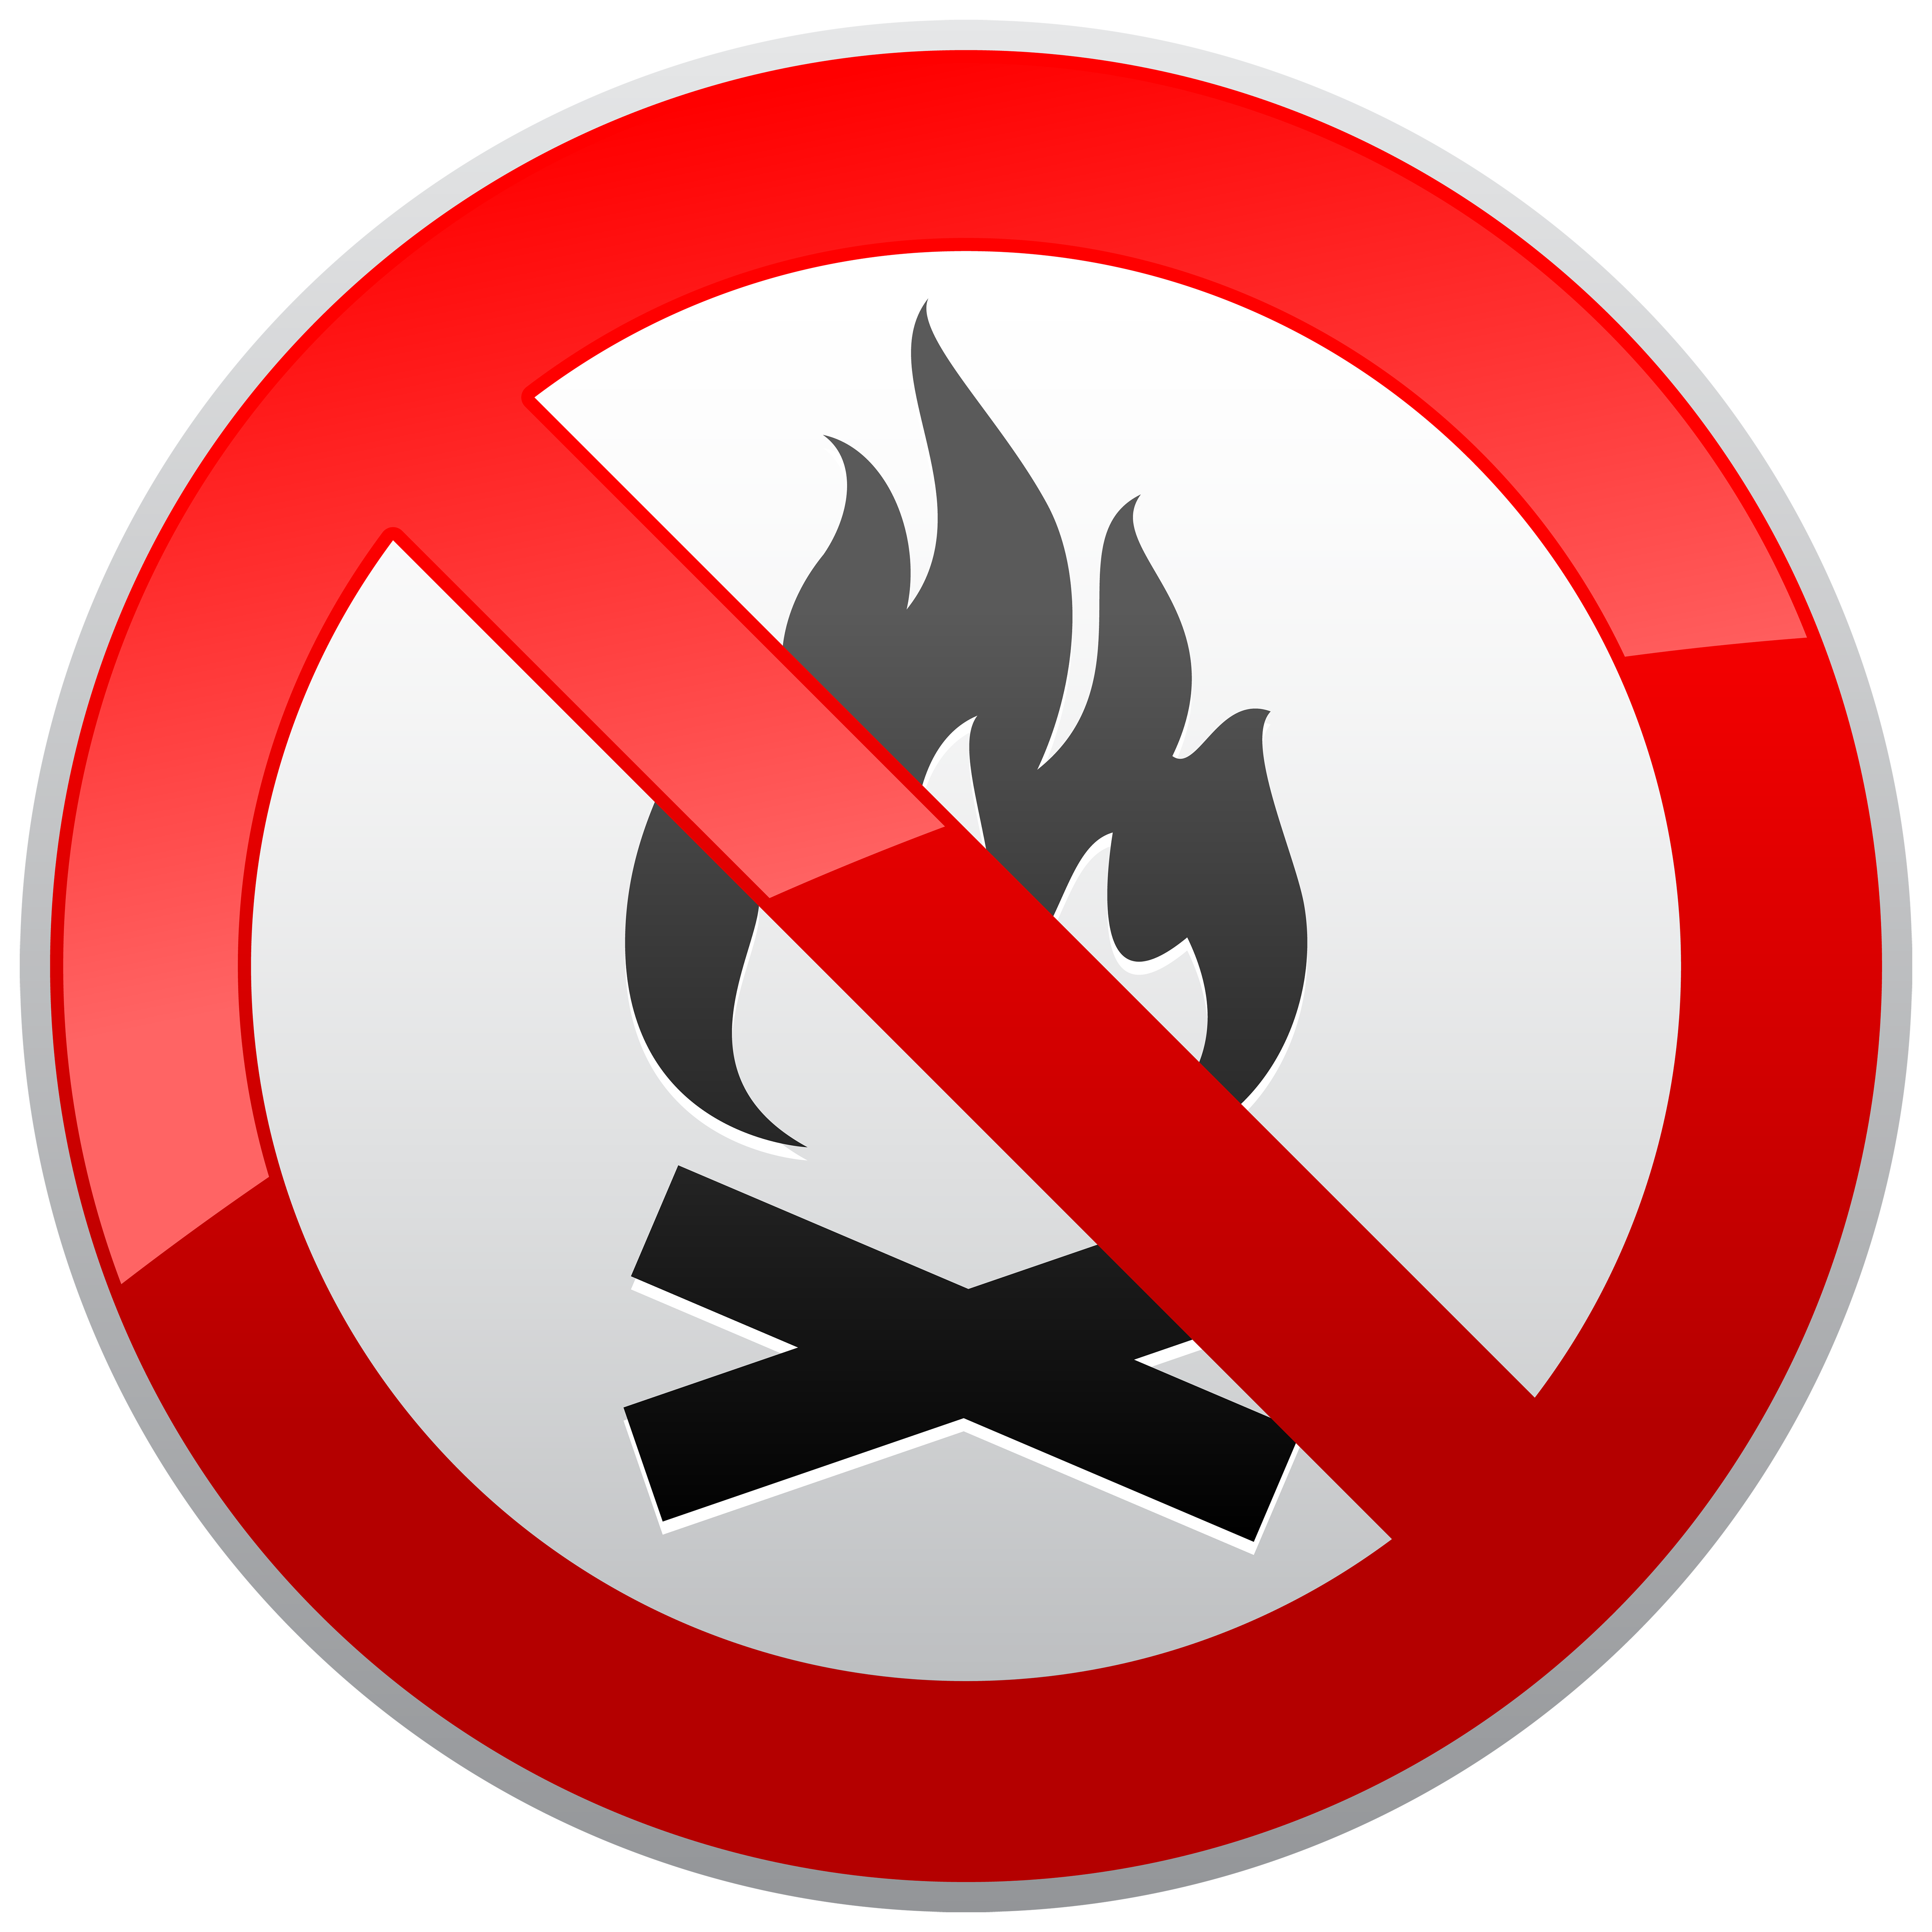 No prohibition sign best. Clipart png fire